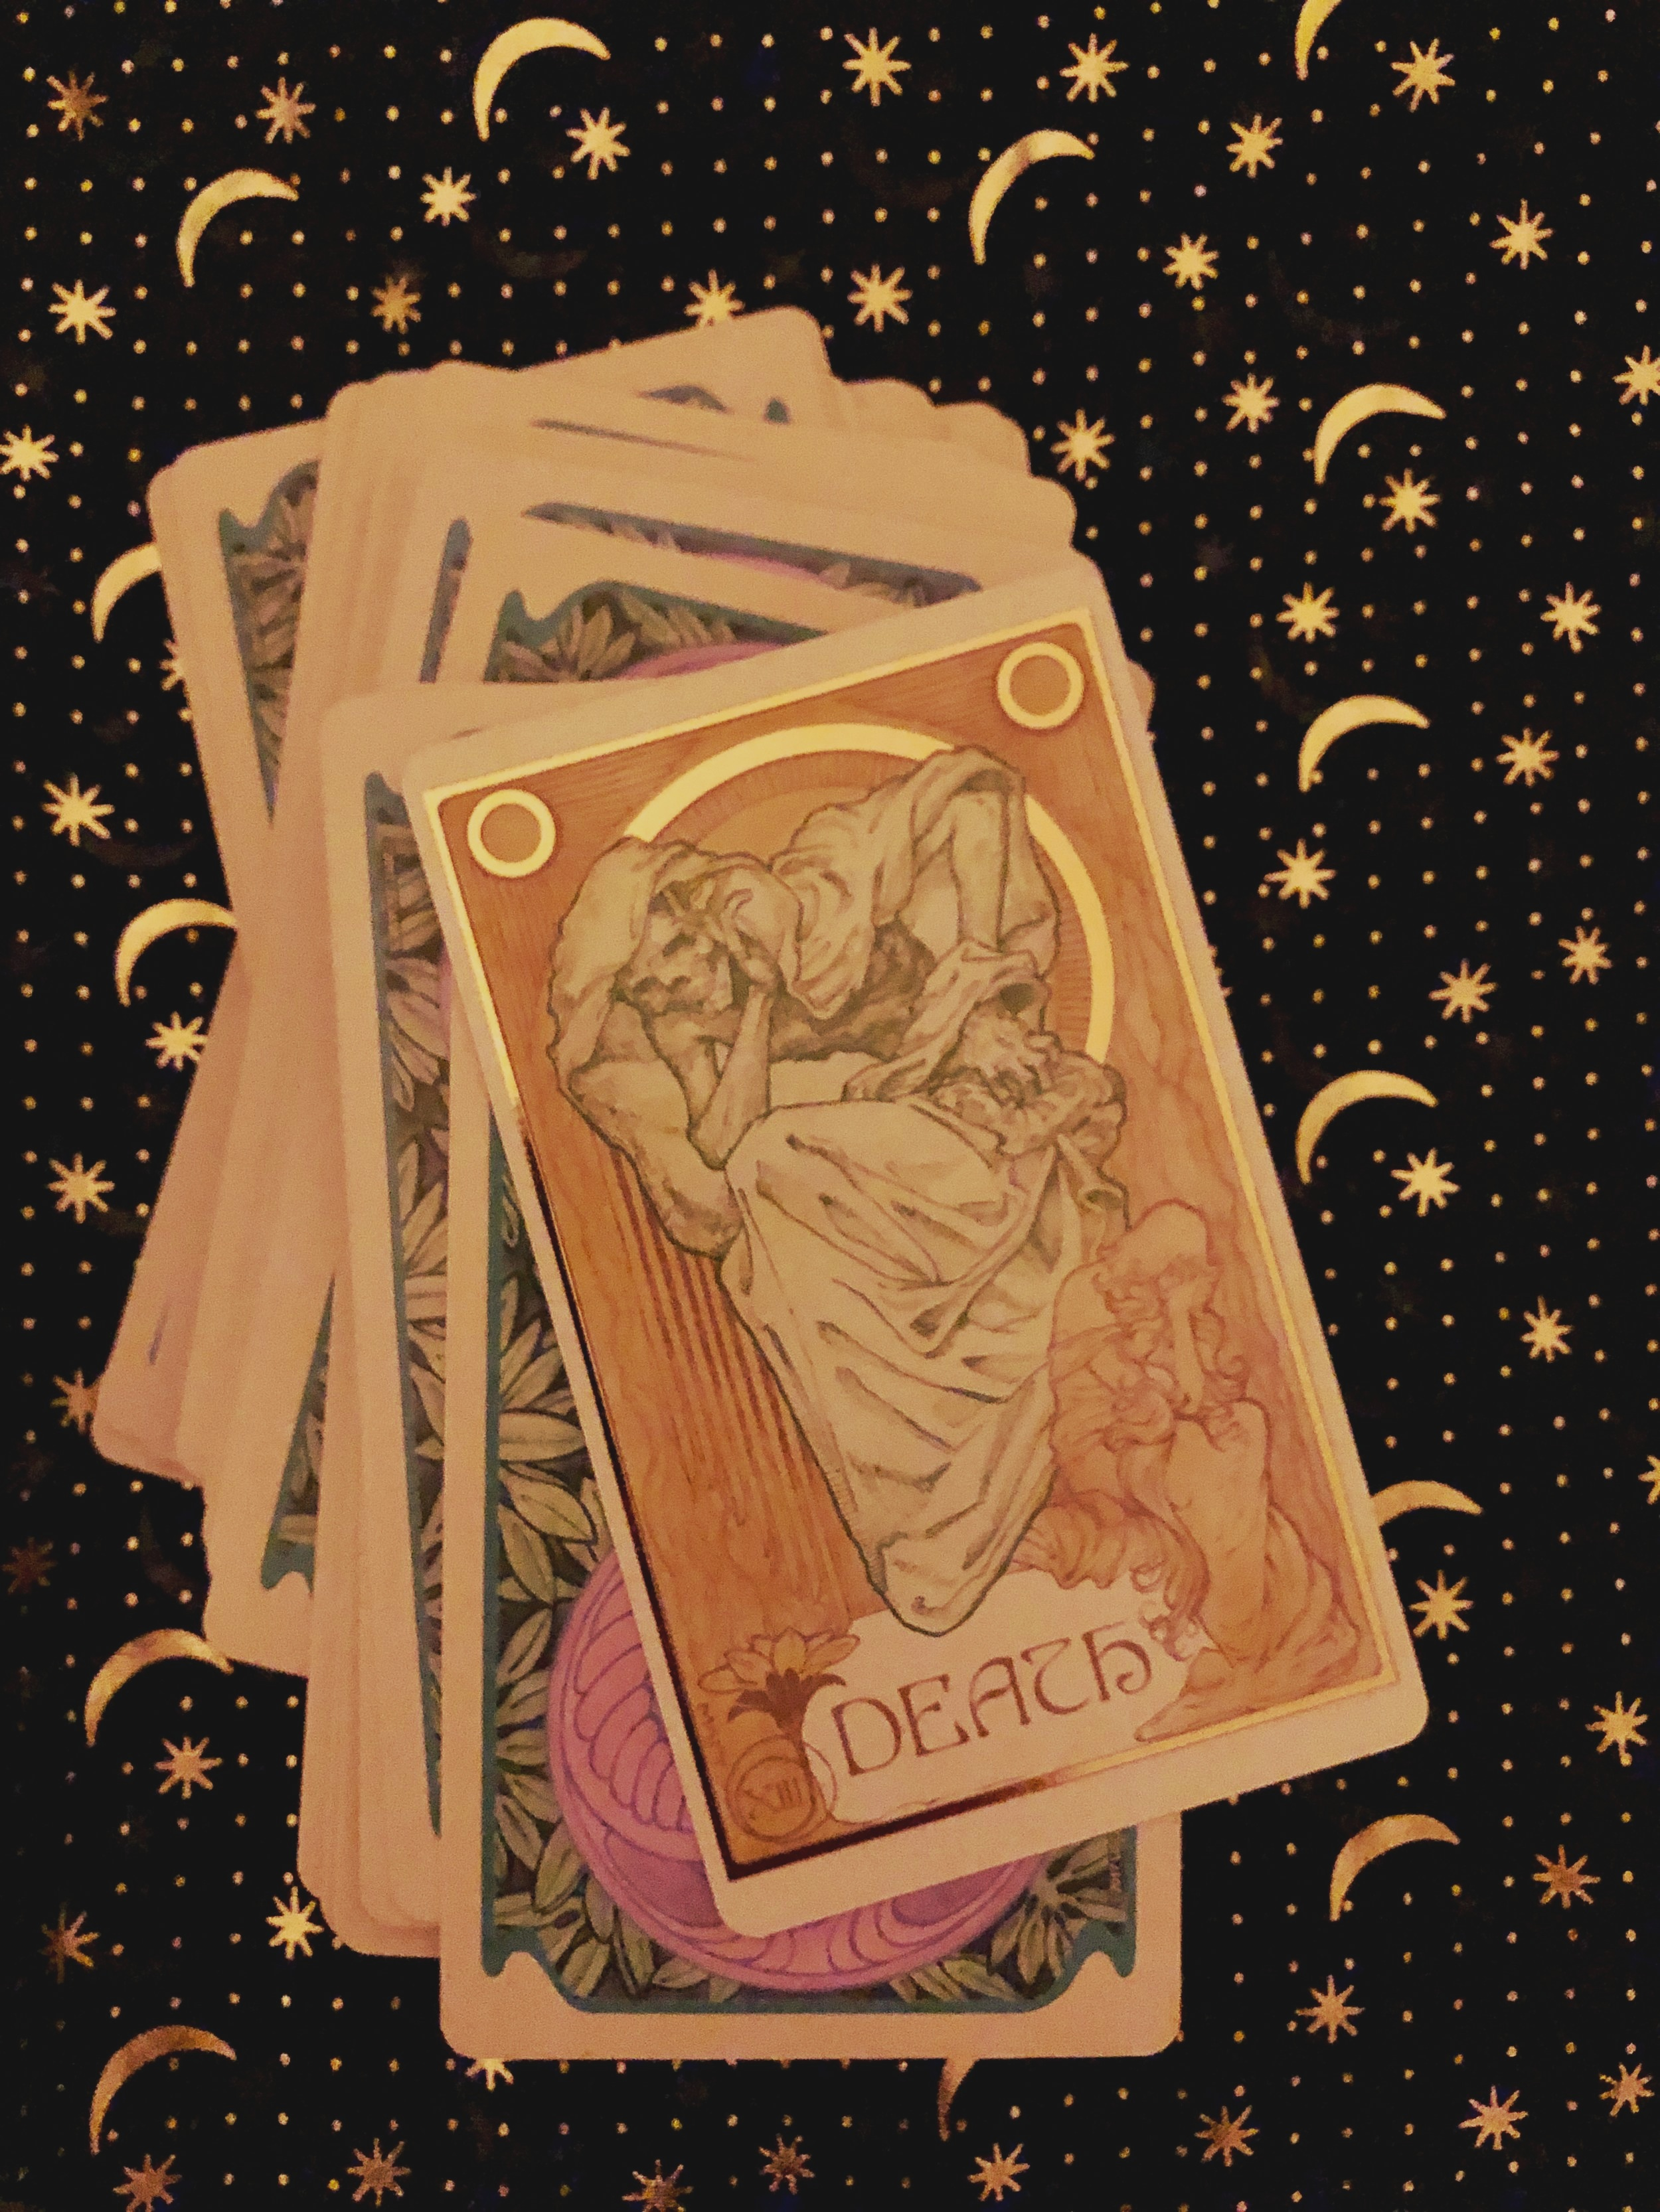 from the Ethereal Visions tarot